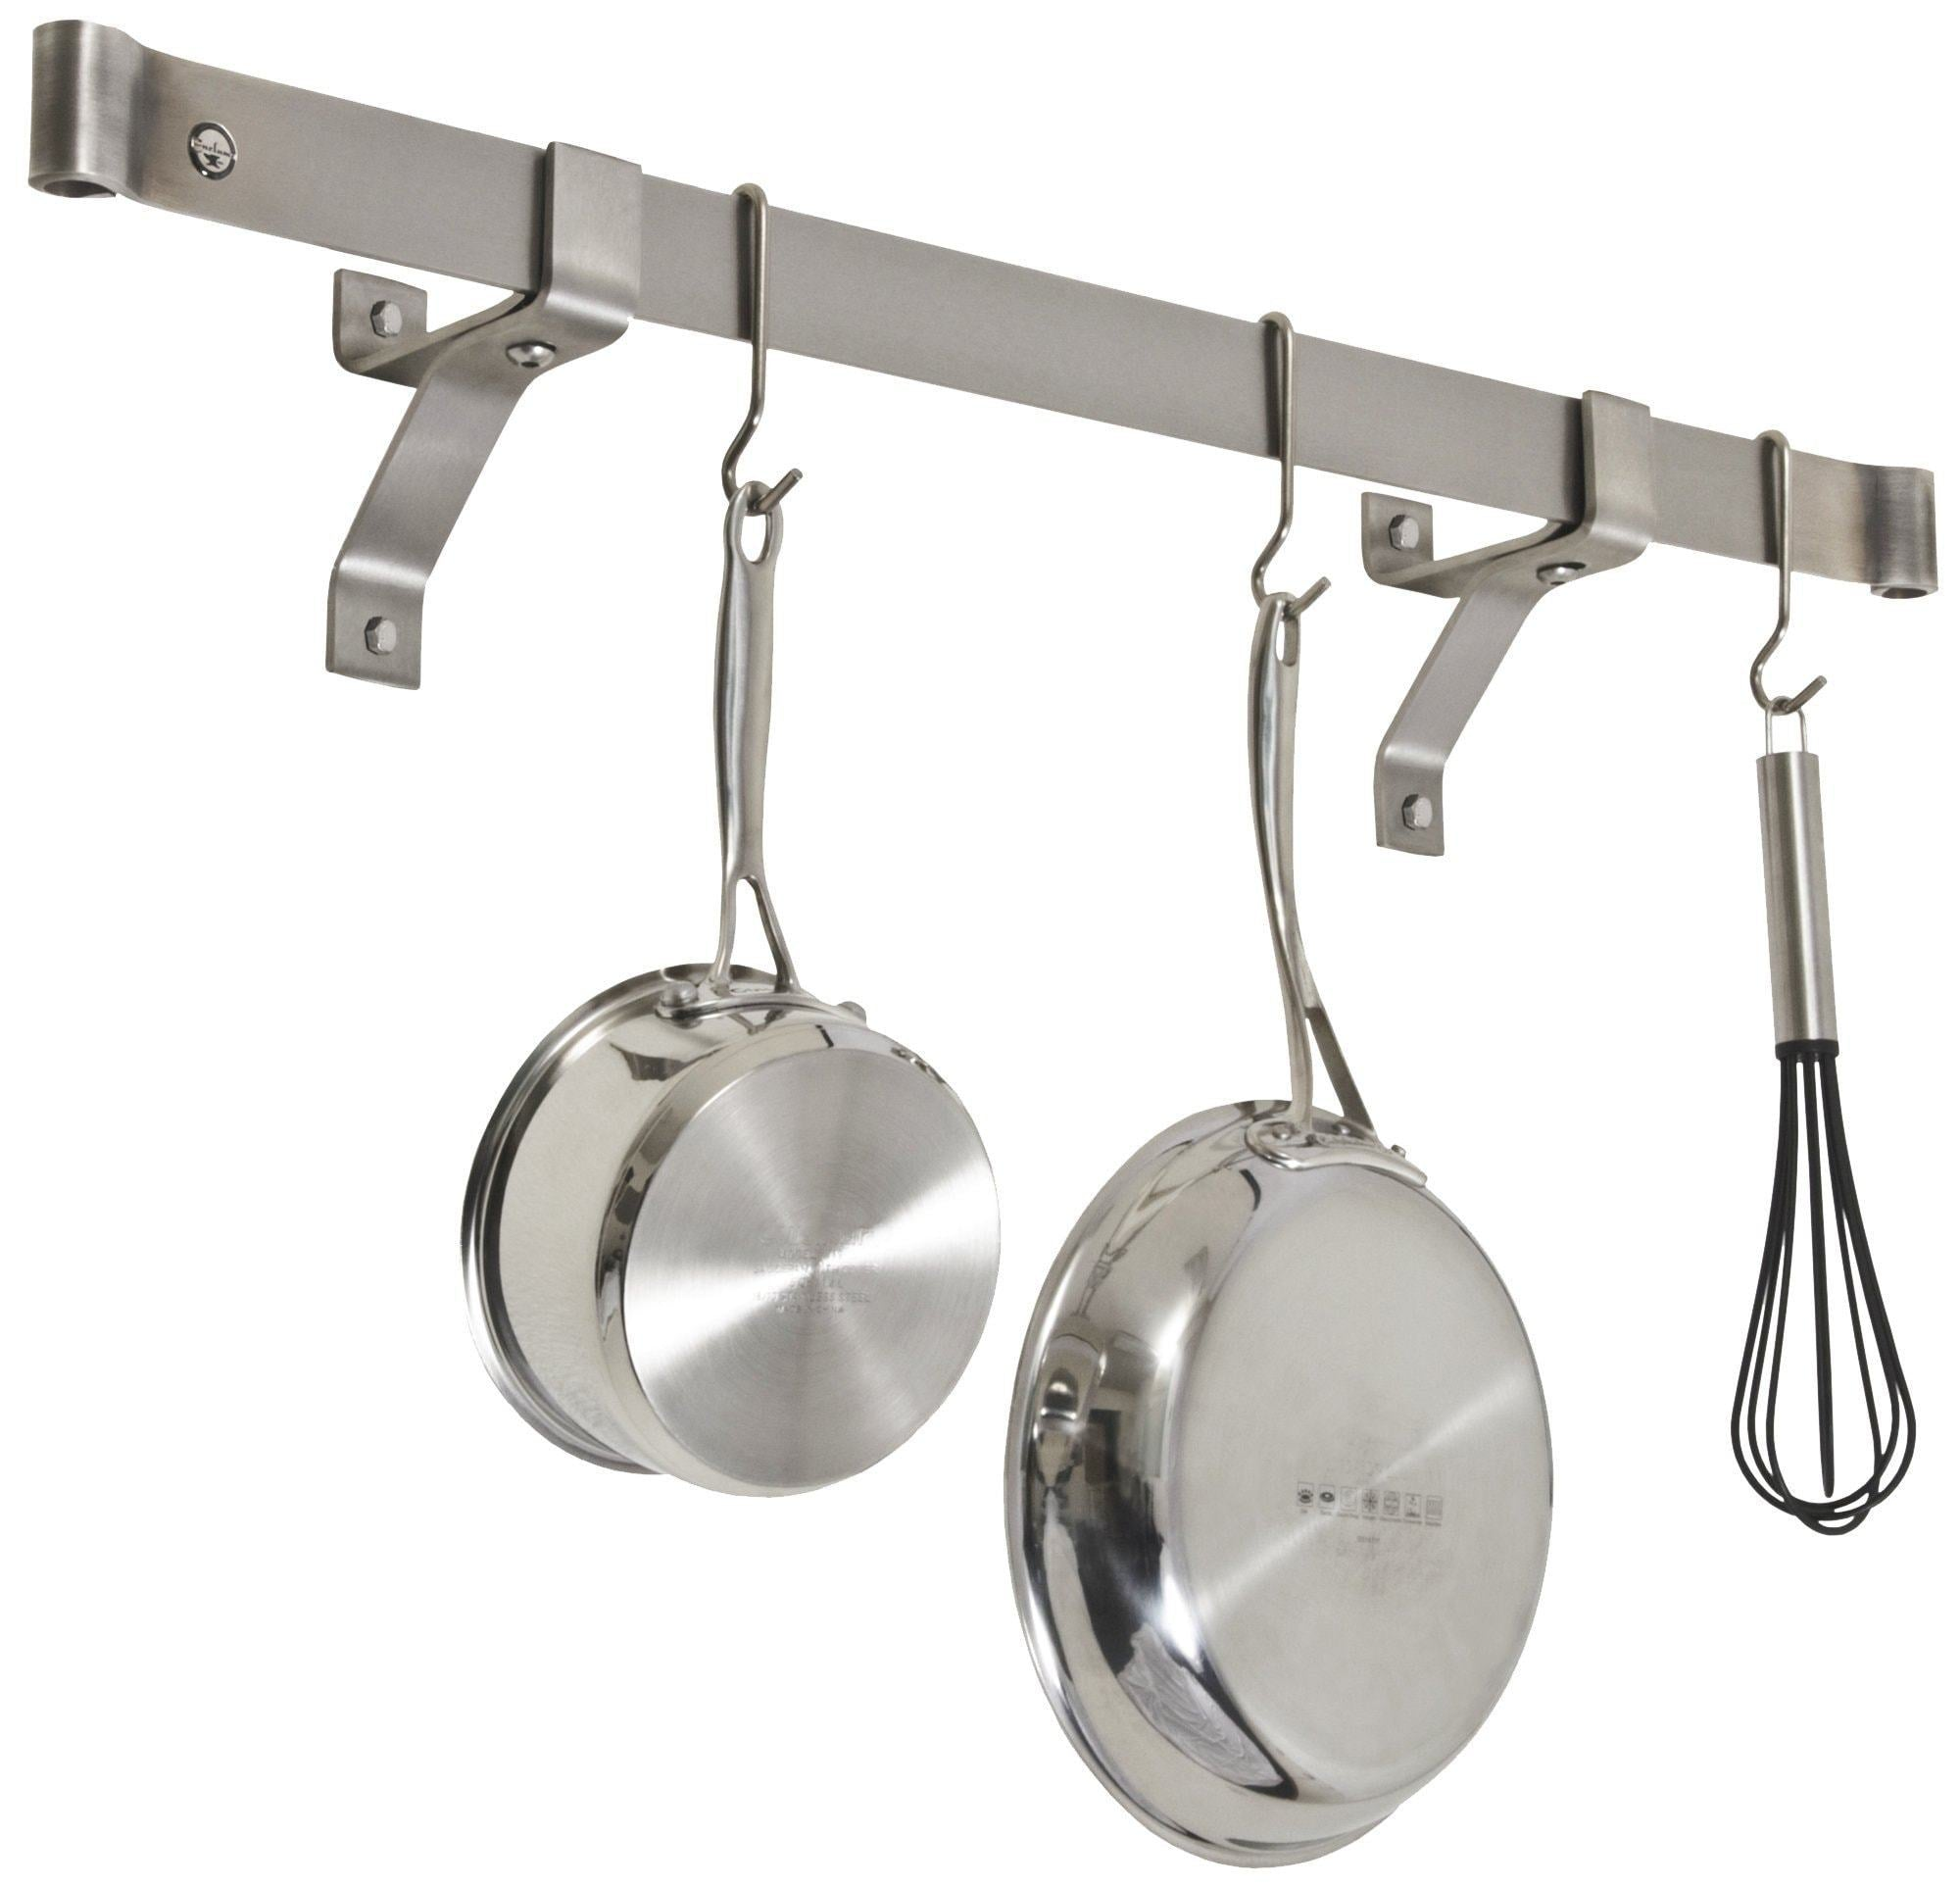 Kitchen enclume premier 36 inch rolled end bar wall or ceiling pot rack use with wall brackets or captain hooks stainless steel